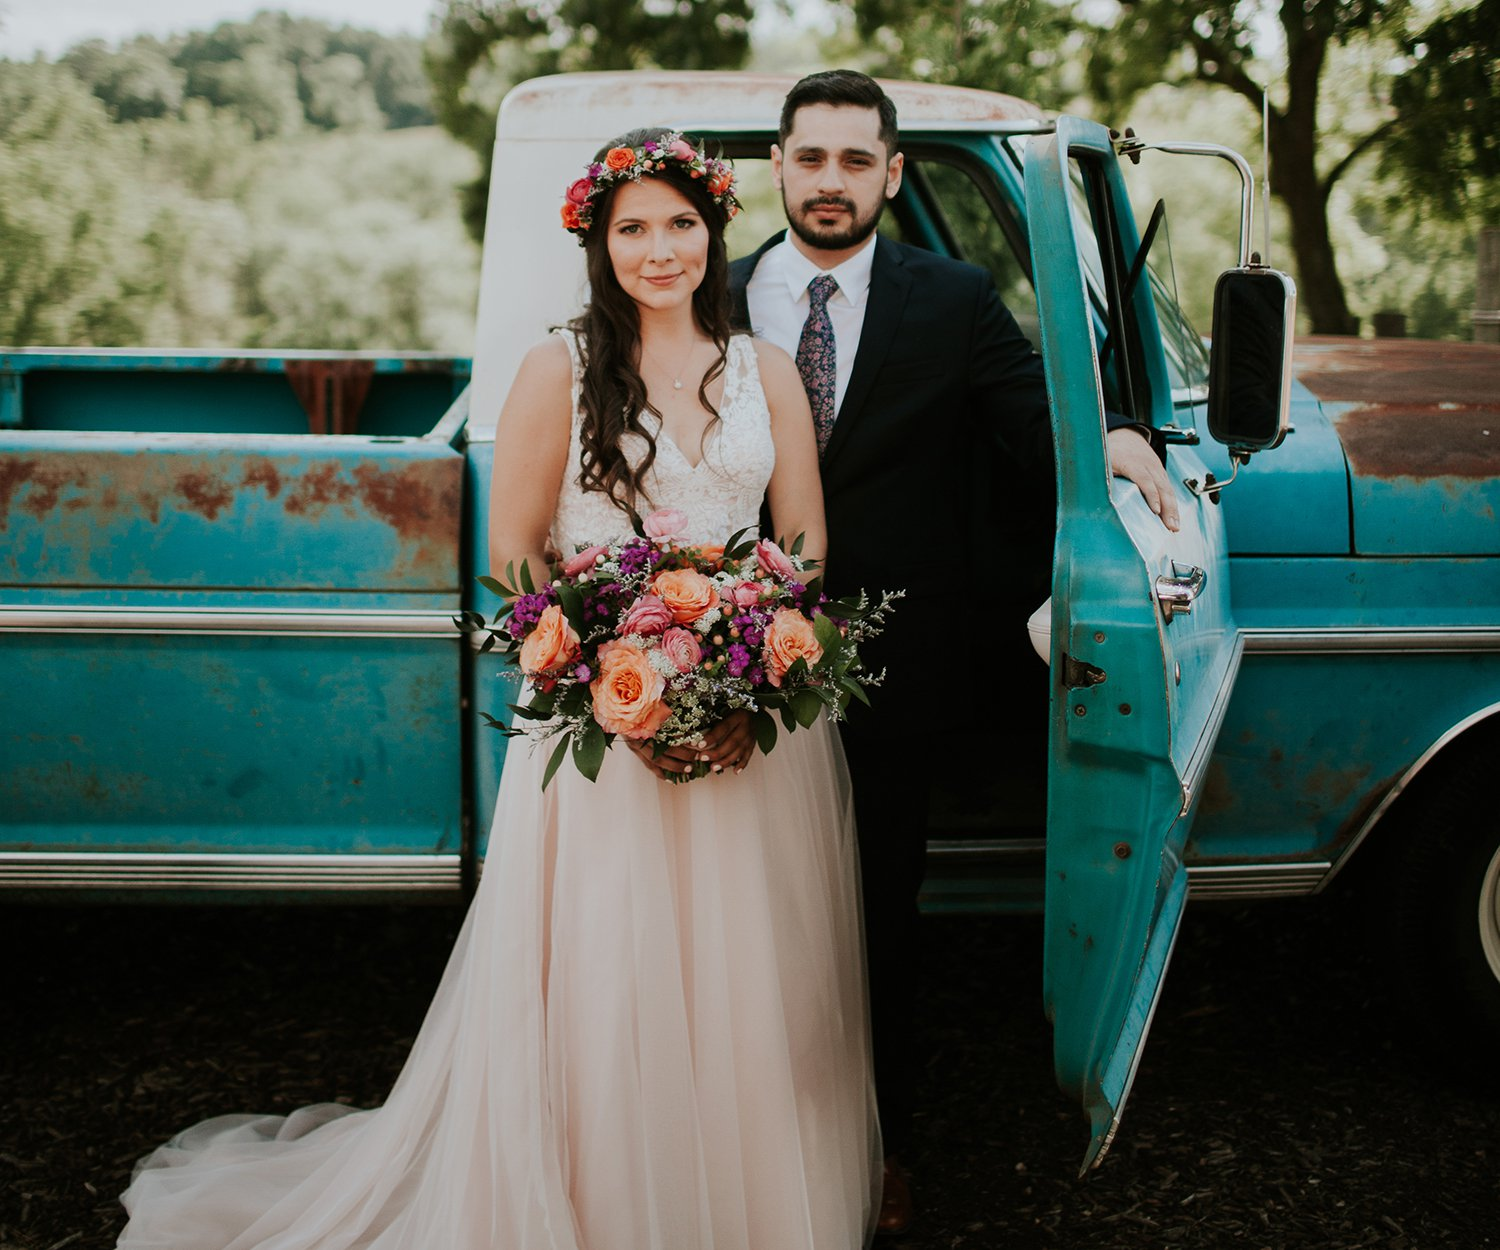 Mackenzie Lee & Ricky Hernandez wedding portrait with an old pickup truck